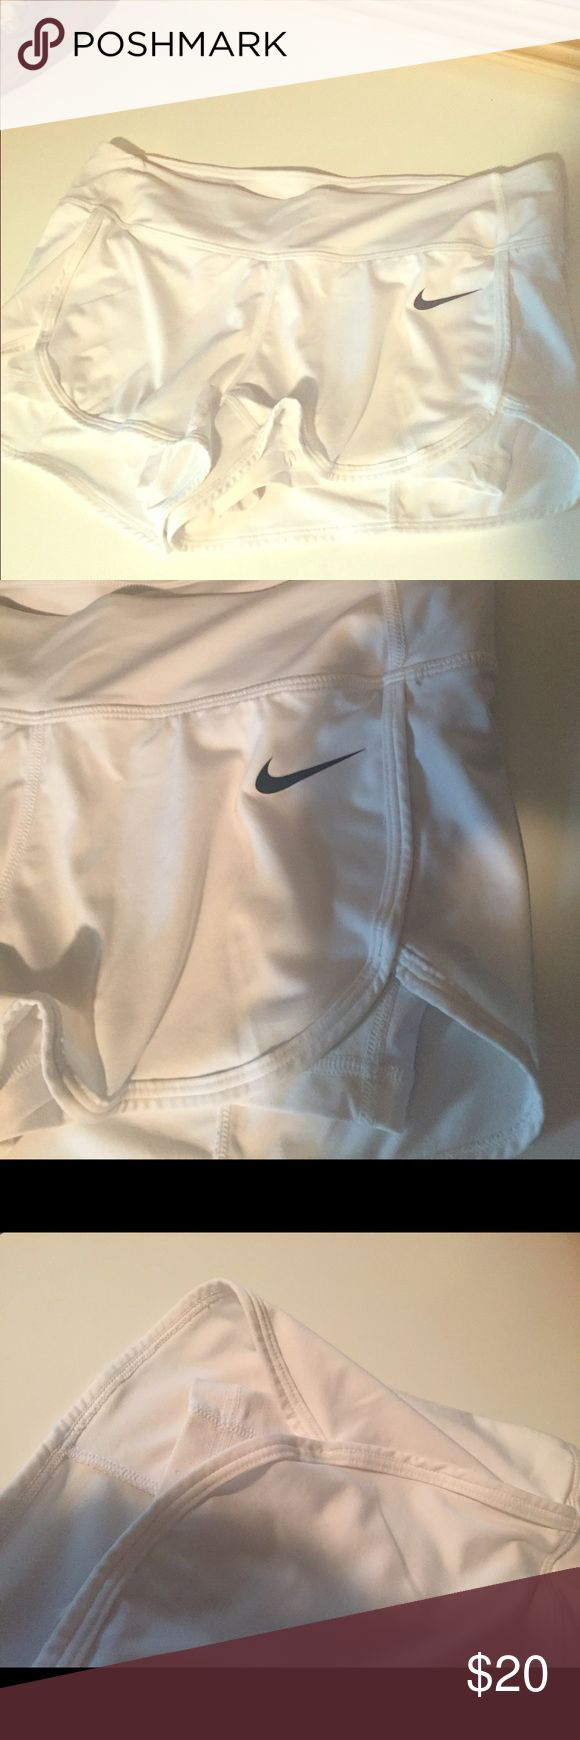 Woman's Nike TENNIS shorts These shorts are for tennis... They fit tight!  And are supposed to be tight!  So as a 45 year old I must let them go ha ha!  I'm a size 10!  The waist is not made for them to be too loose or they fall when playing.. I bought a large and discovered that:(. Nylon material Nike Shorts